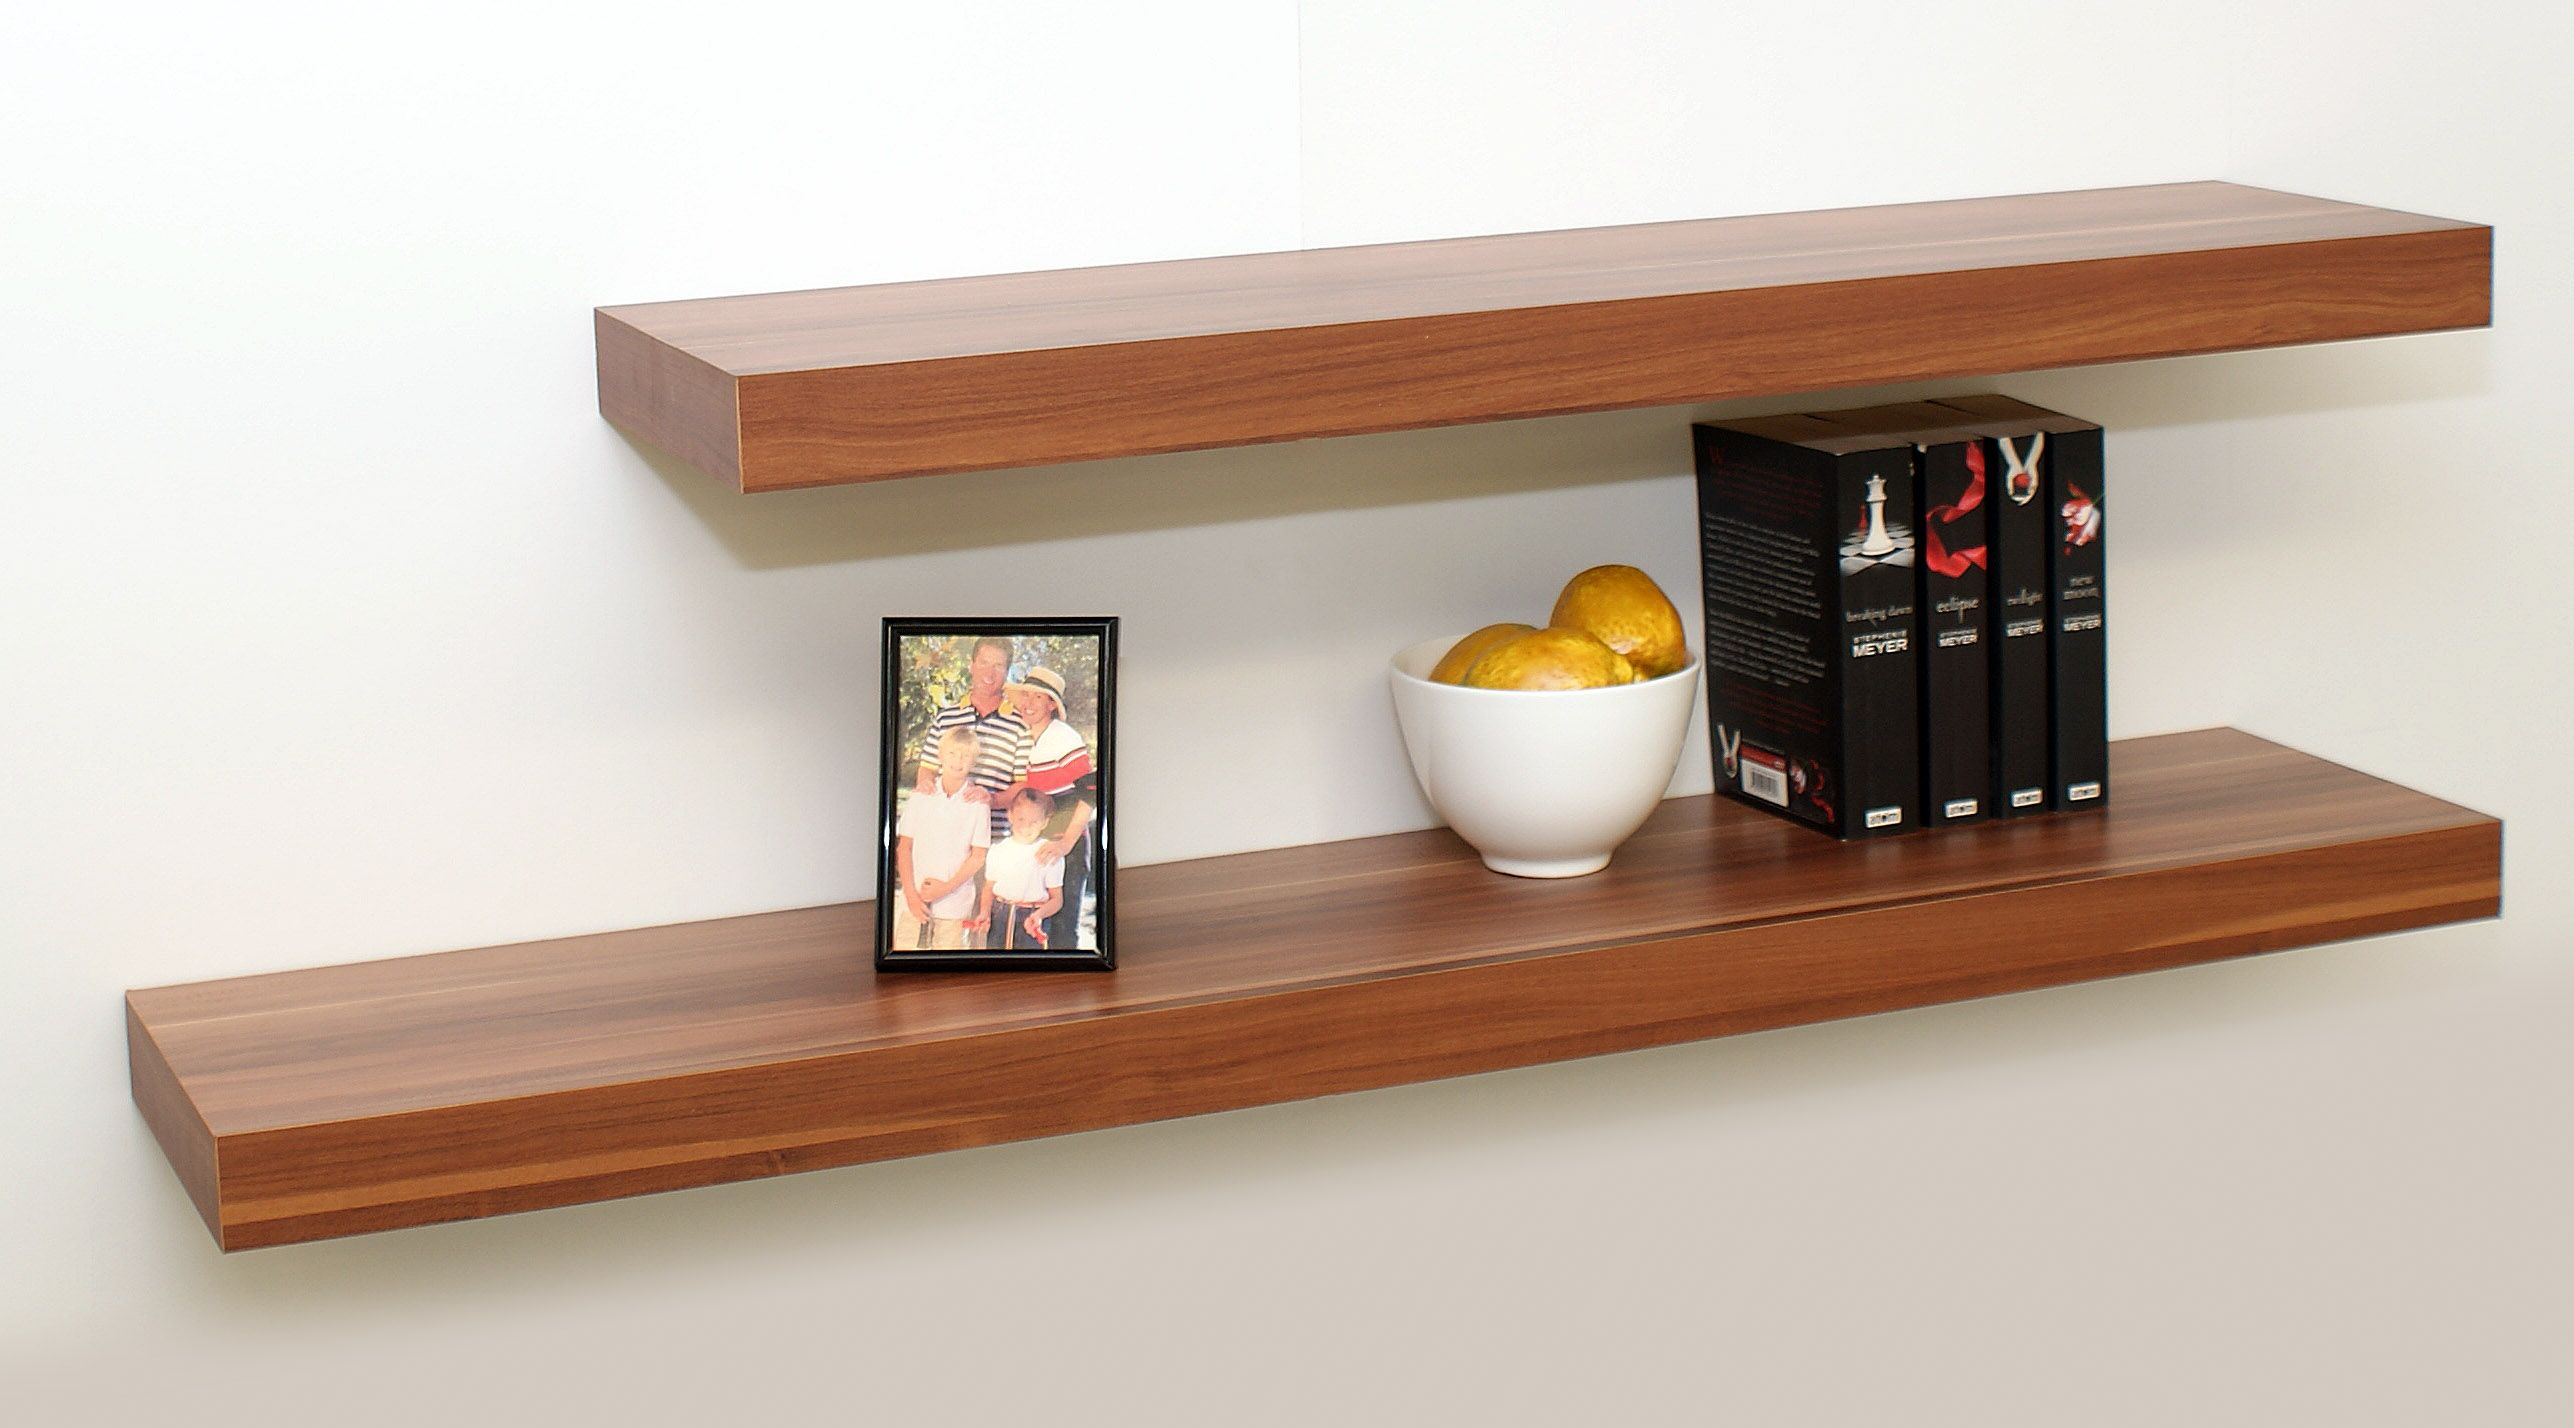 Floating Bookshelves Be Equipped Readymade Wall Shelves Umbra Conceal Book Shelf Wood Look